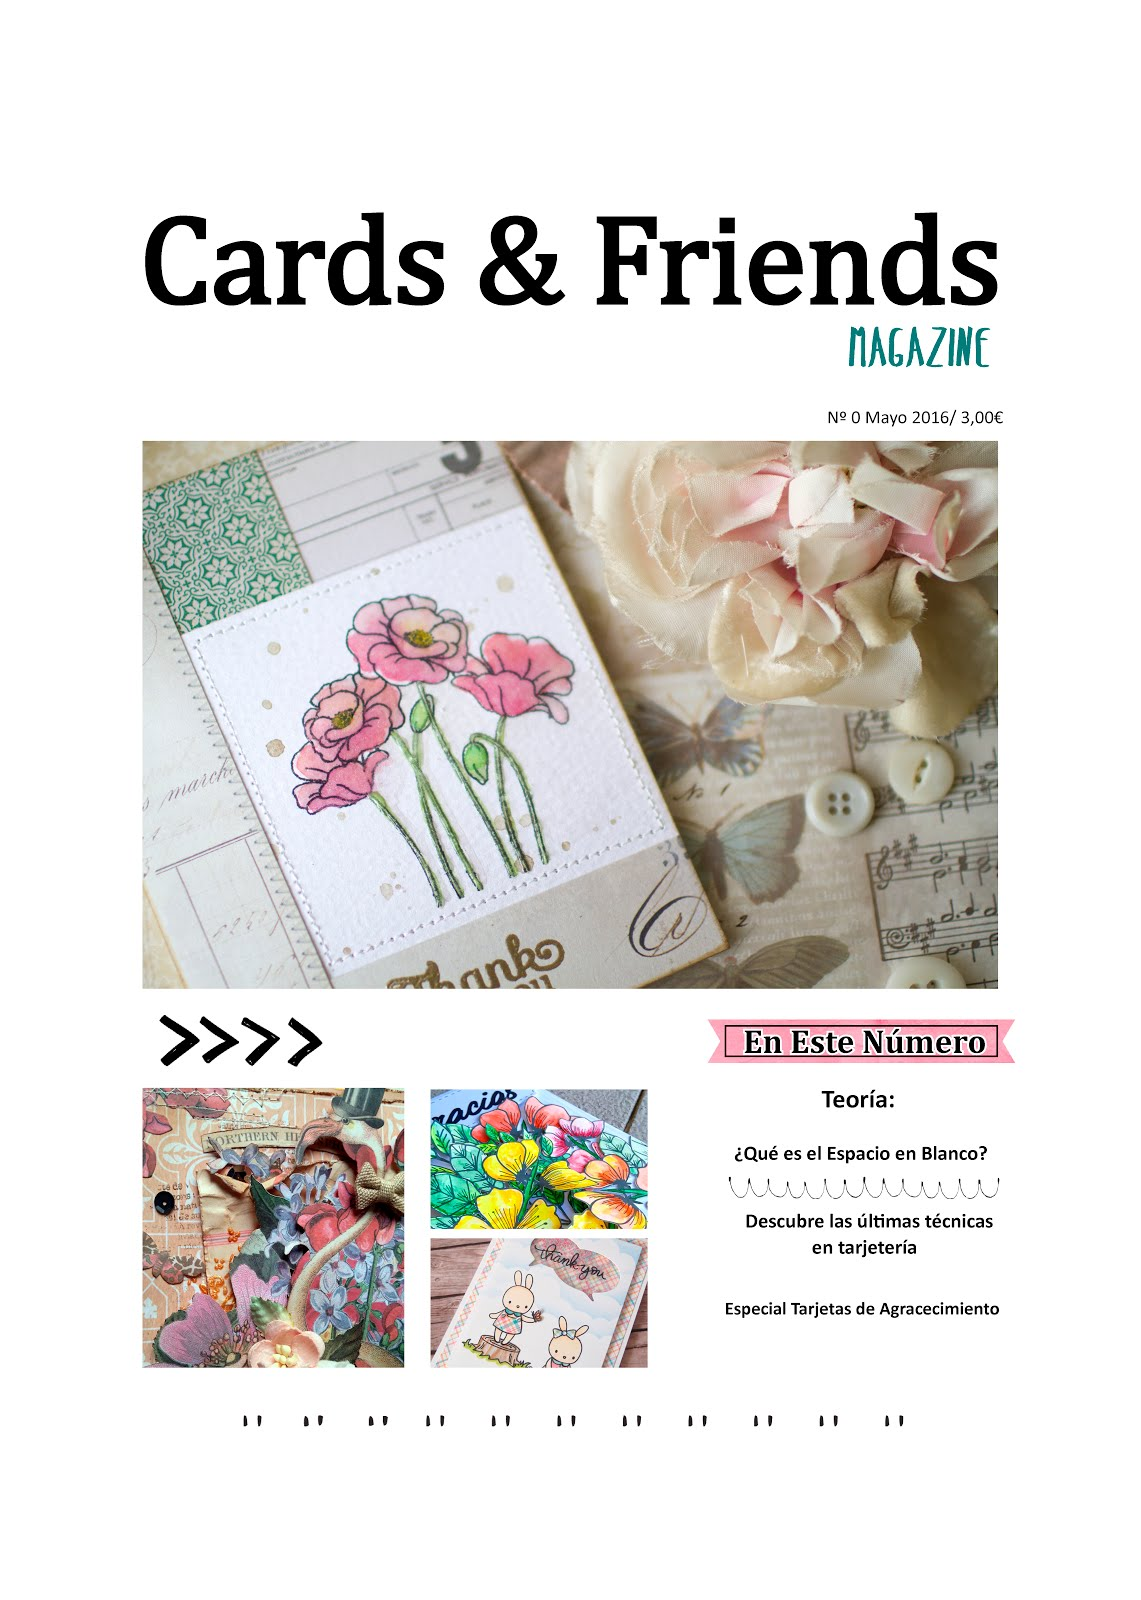 Revista Cards&Friends magazine